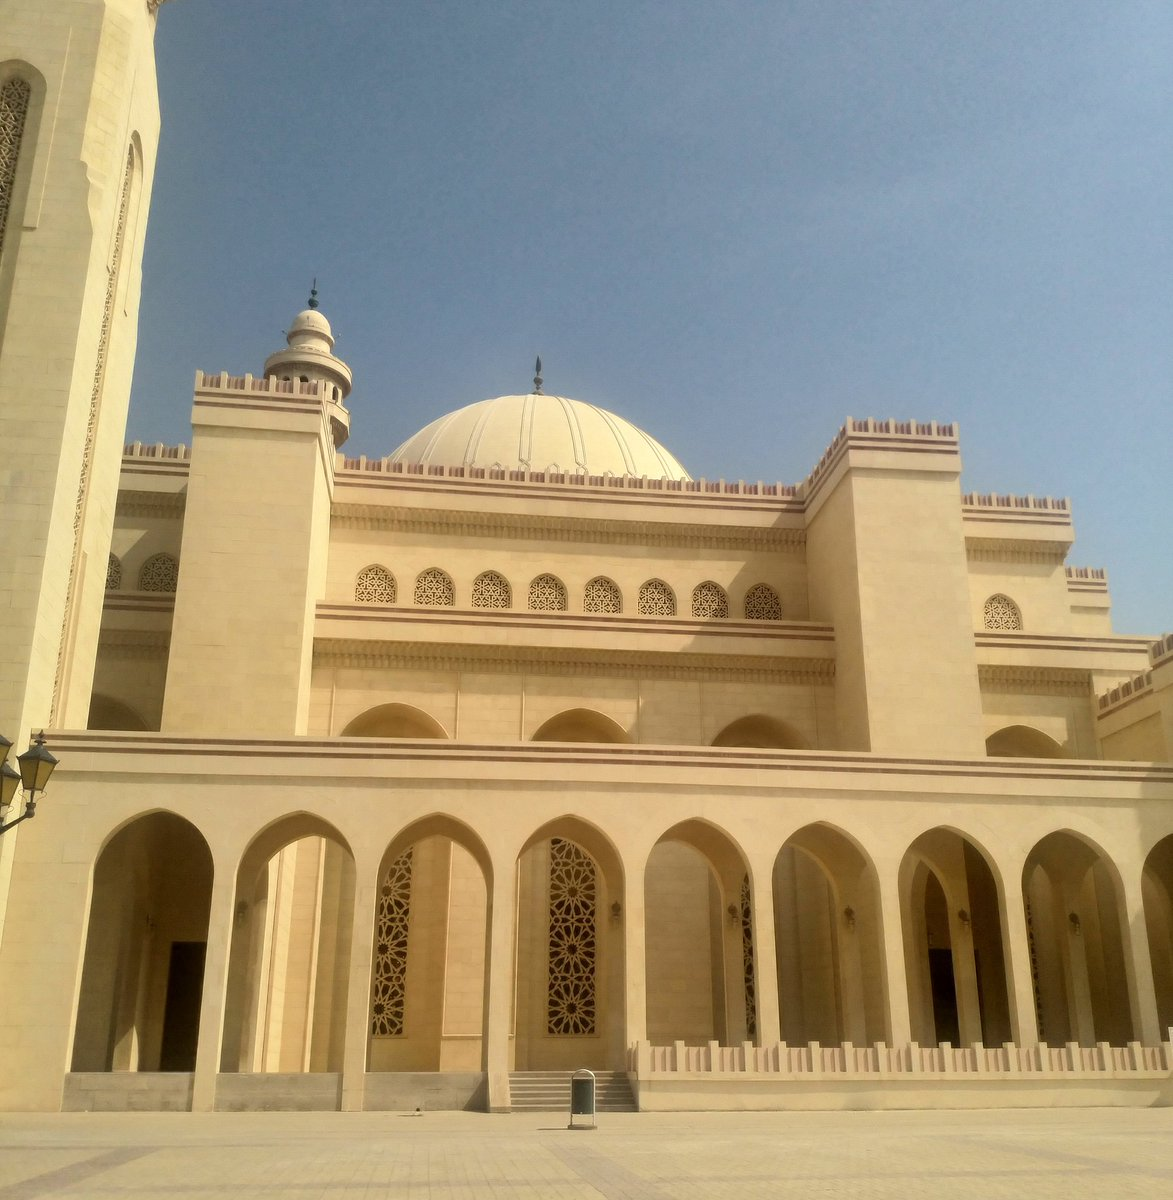 #mosque #culture #religion #faith #abroad #sun #tour #bahrain #stunning #exploring #adventure https://t.co/ogtf2wl6U6